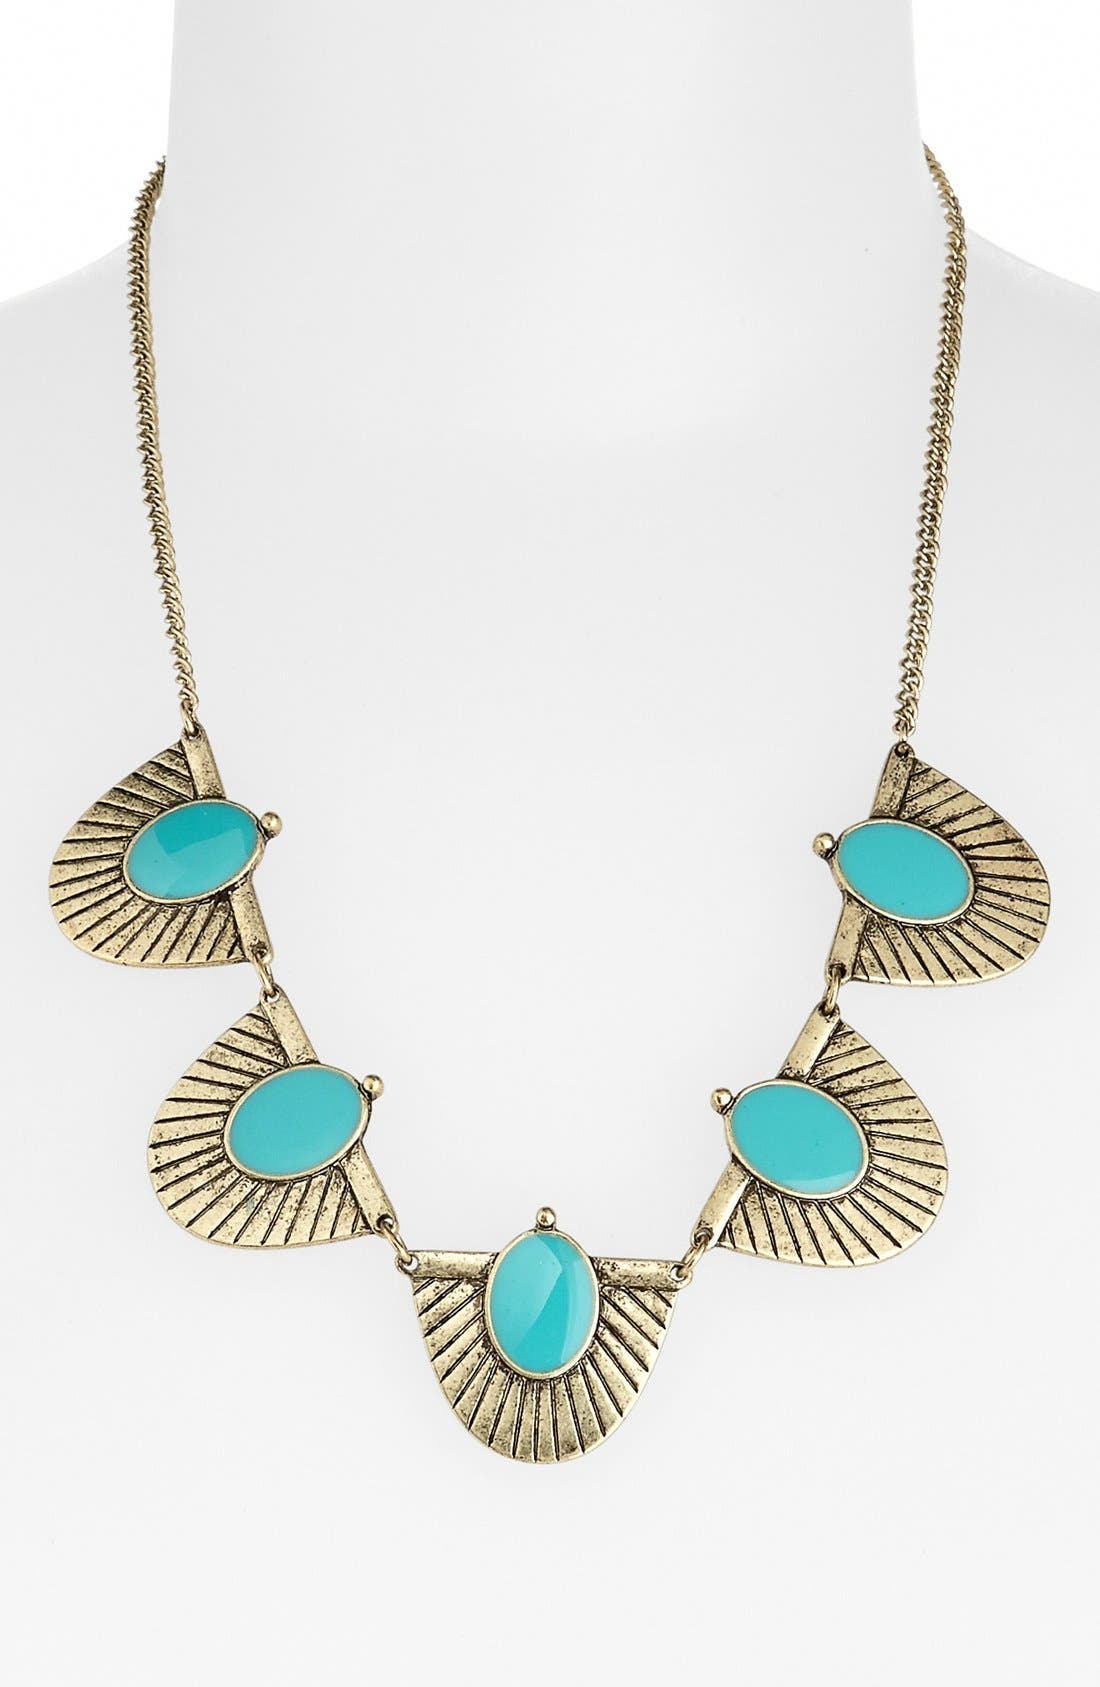 Main Image - Stephan & Co. 'Aztec' Statement Necklace